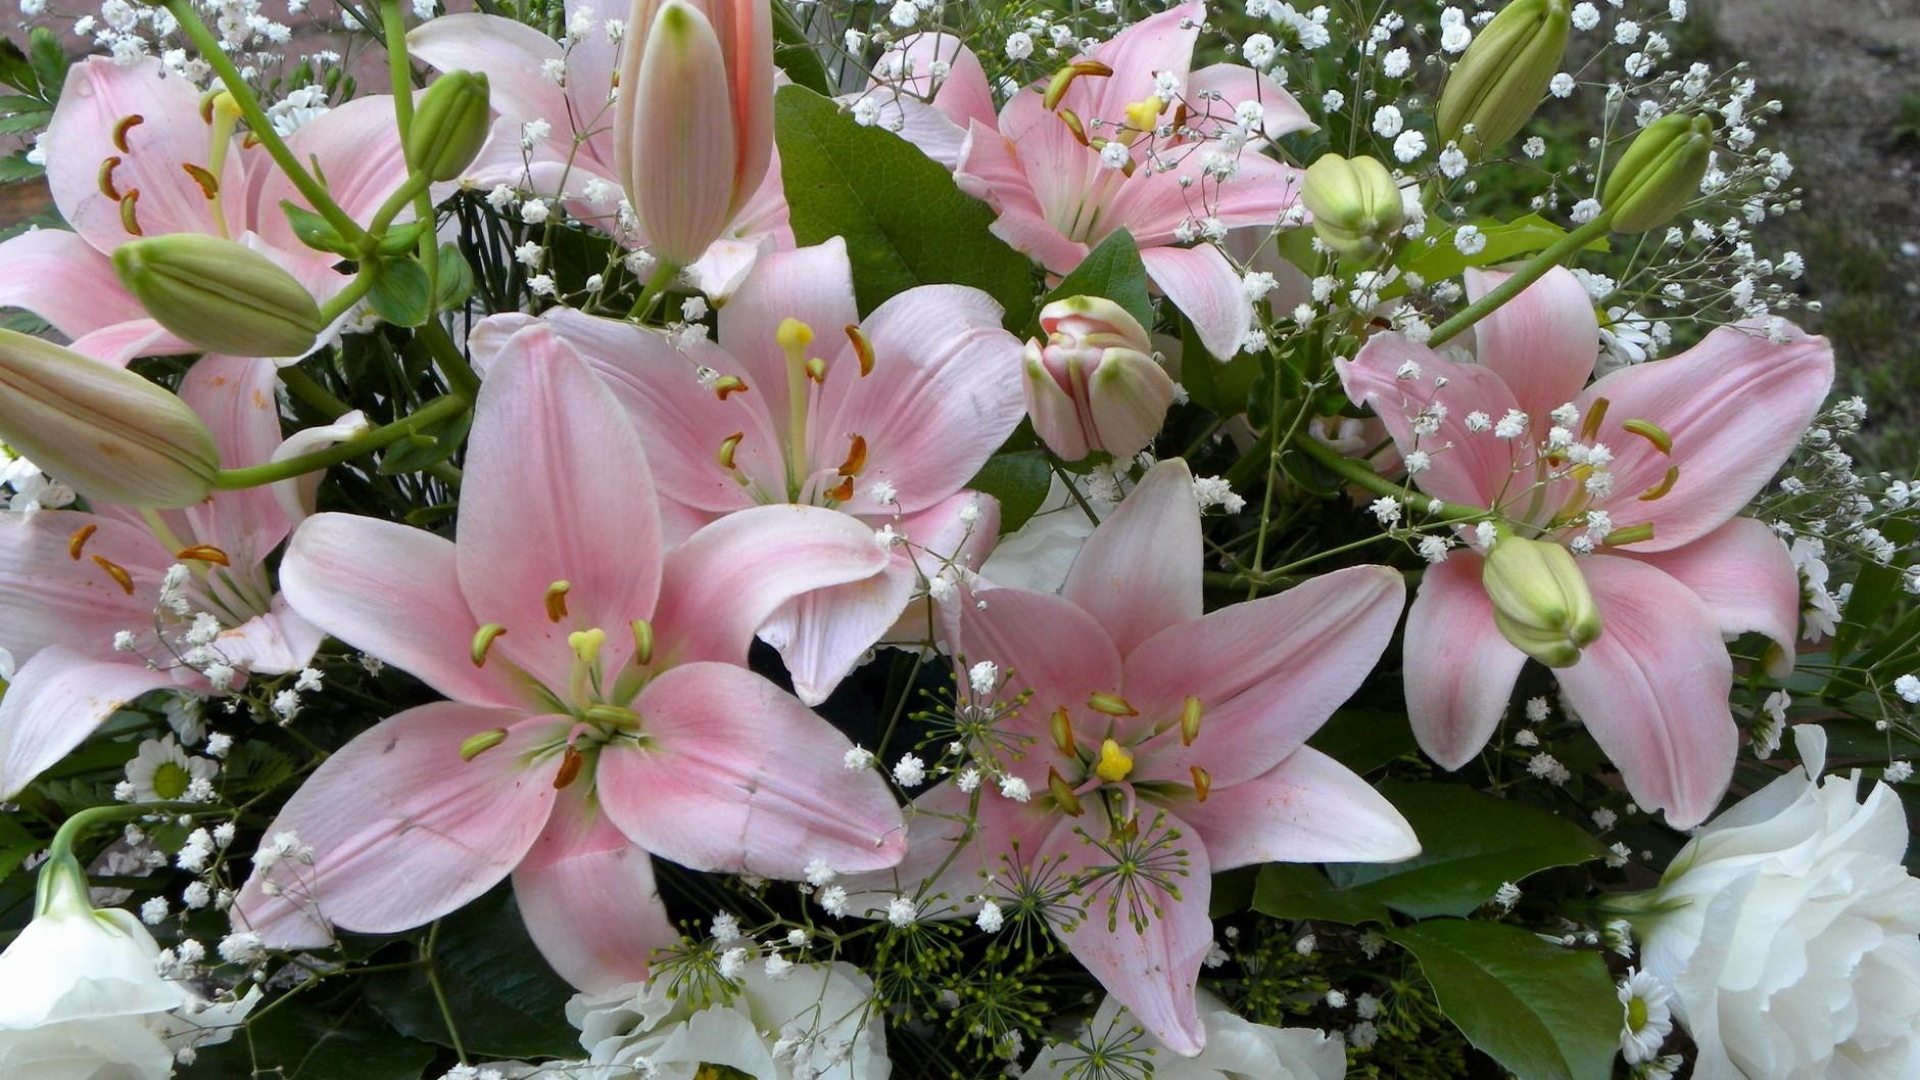 Download wallpaper 1920x1080 lilies flowers gypsophila flower get the latest lilies flowers gypsophila news pictures and videos and learn all about lilies flowers gypsophila from wallpapers4u your wallpaper izmirmasajfo